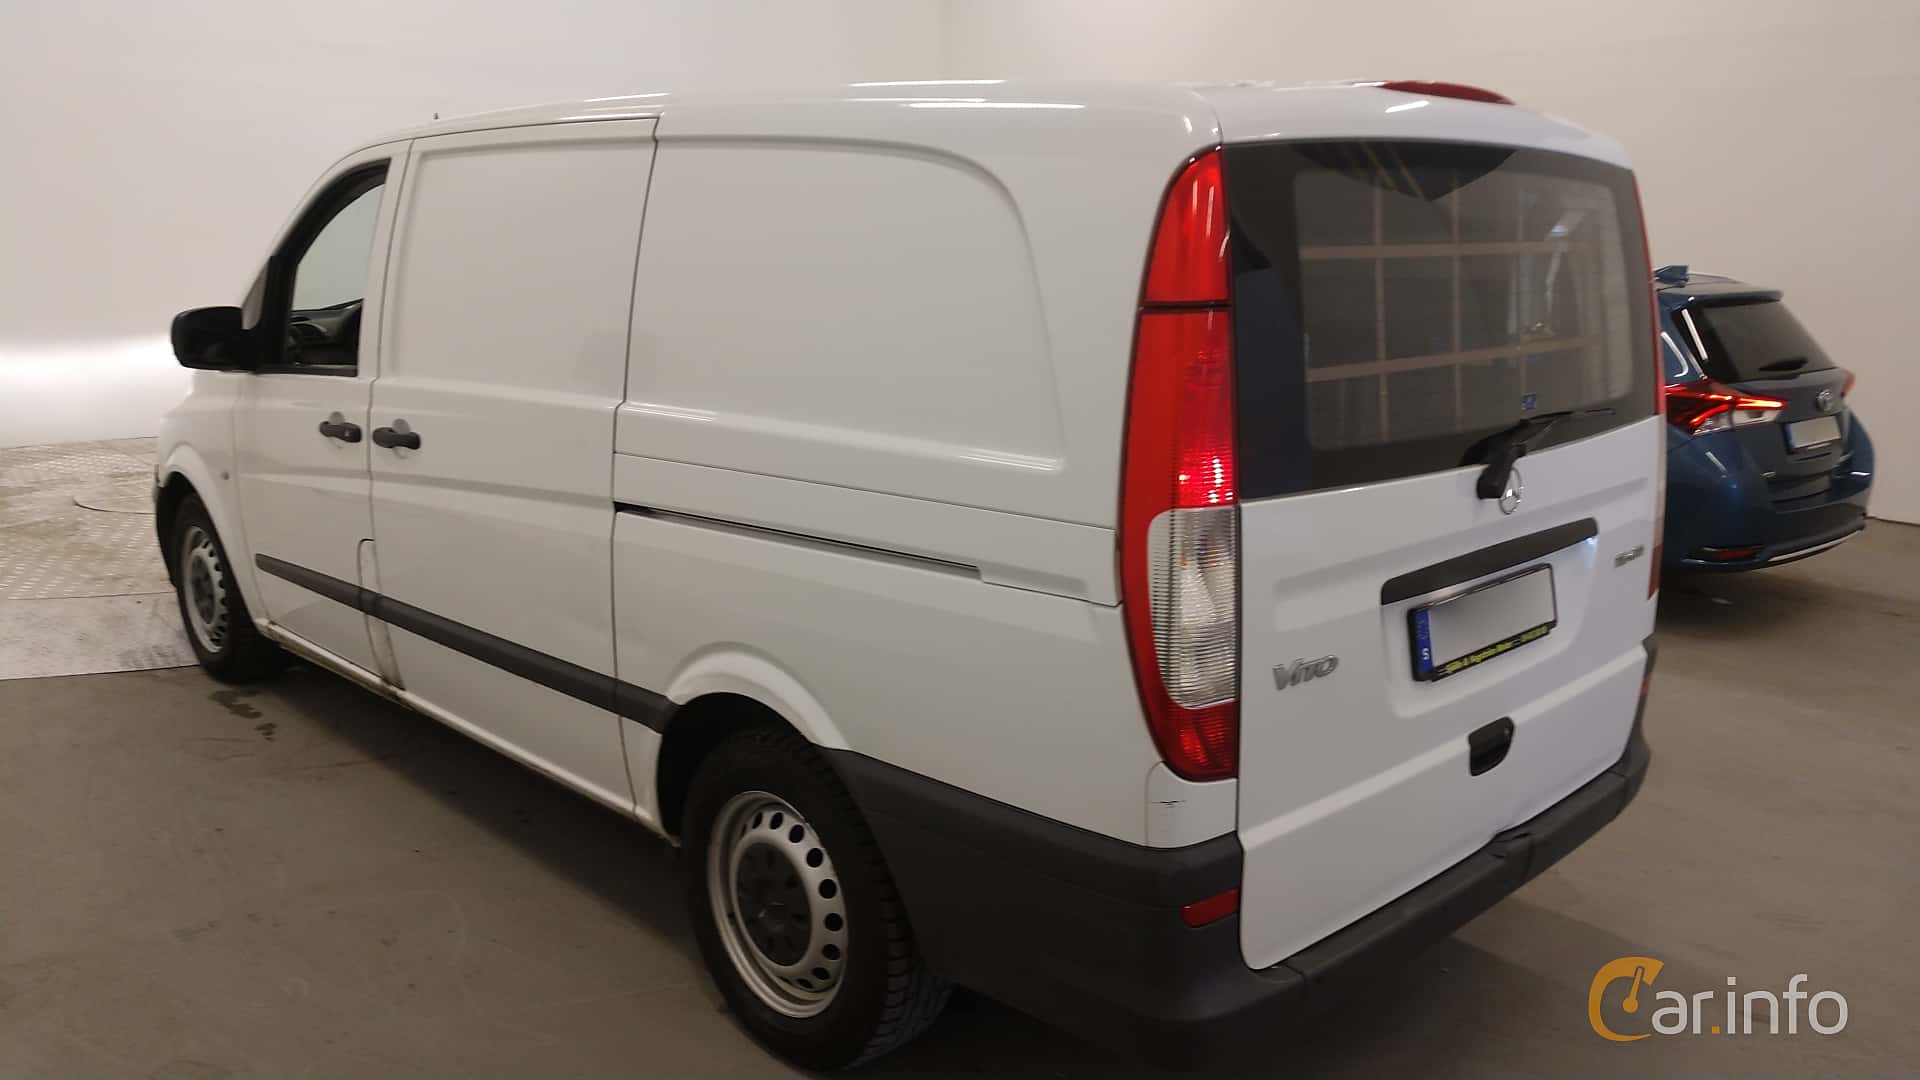 Mercedes-Benz Vito 116 CDI  TouchShift, 163hp, 2012